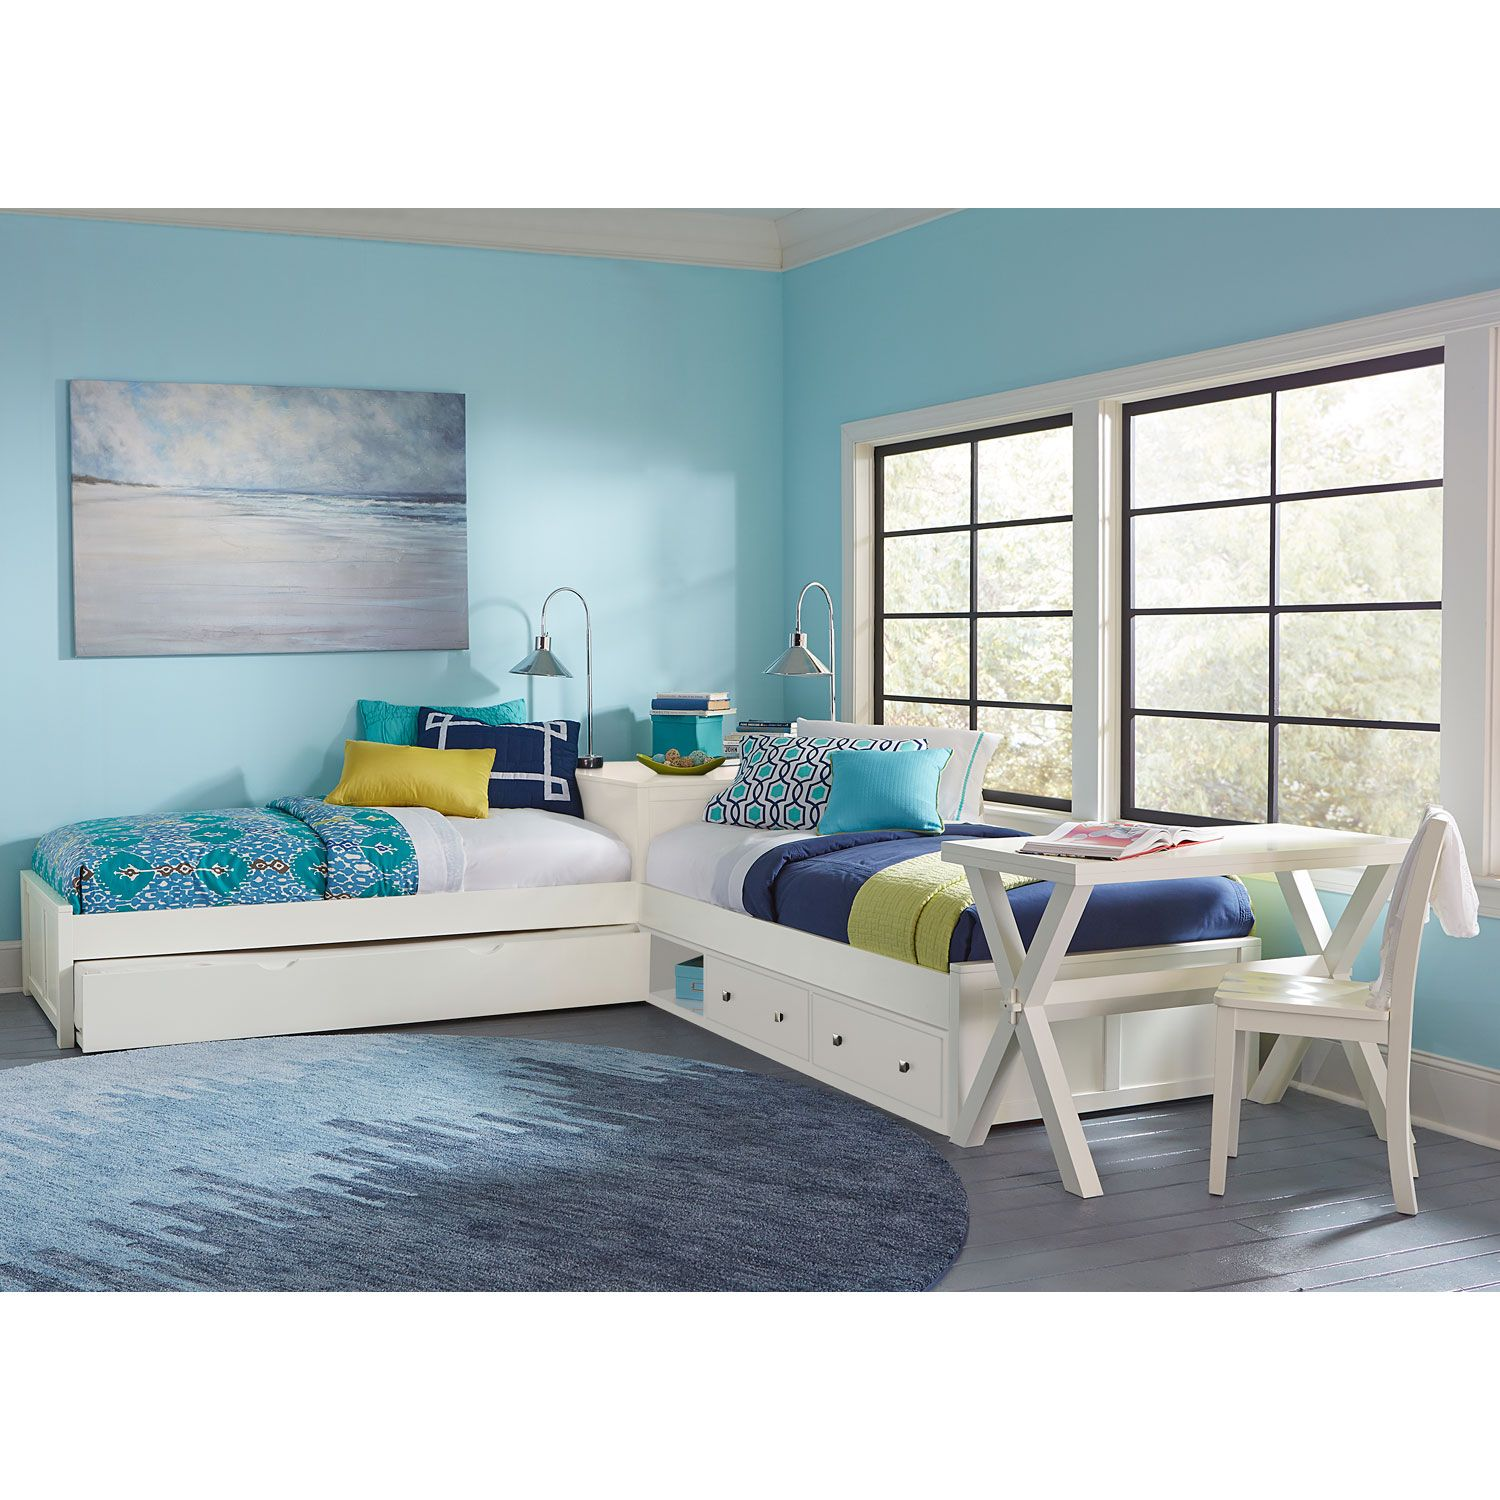 bed twin lake number headboard kids and storage house footboard item adrian ne products with arched